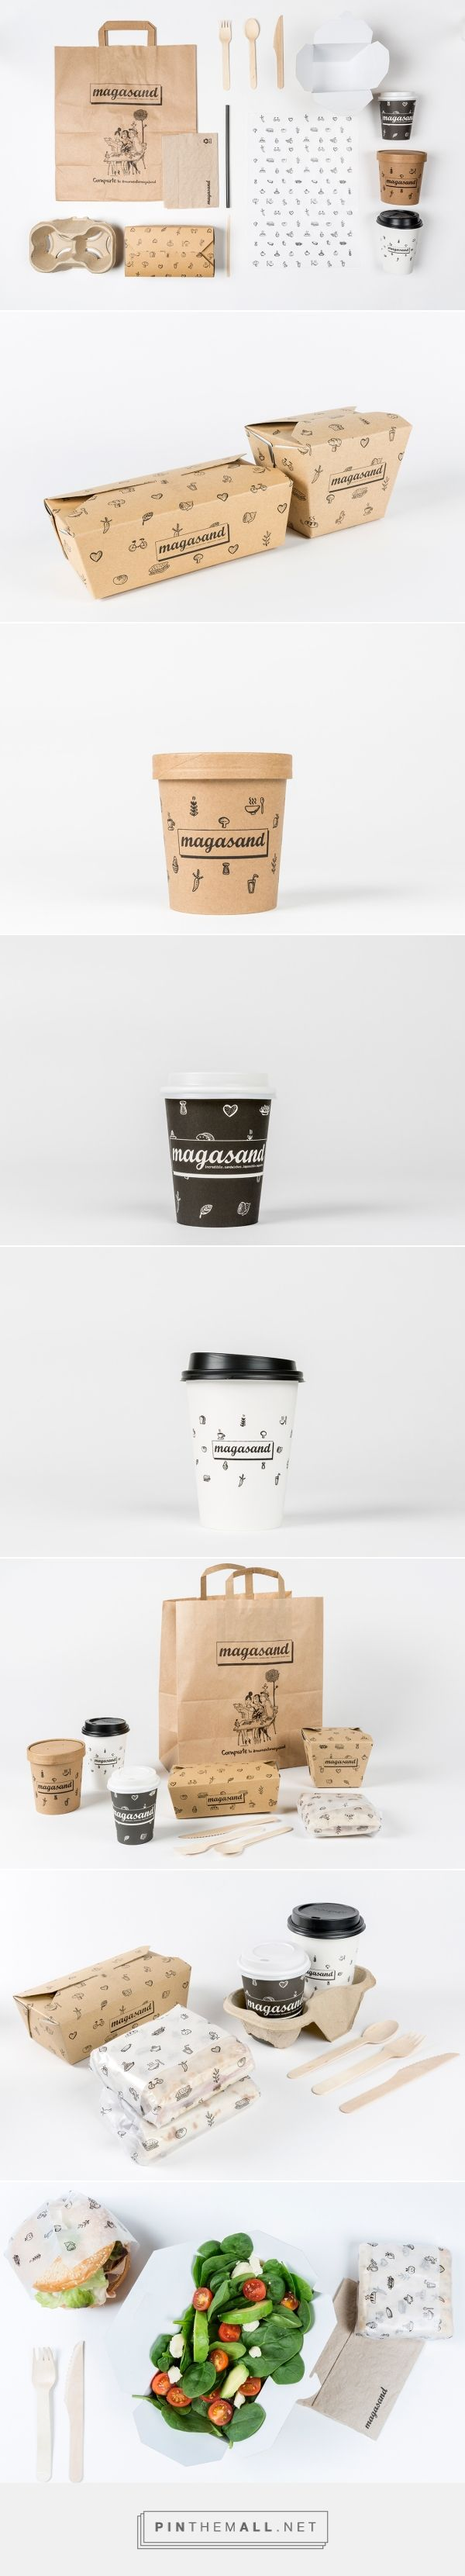 Magasand branding, packaging and Illustration on Behance by Mo Kalache, Madrid Spain curated by Packaging Diva PD.  Consisted of rebranding the logo and introducing hand-drawn patterns printed on recycled material to reflect the homey and eco friendly concept of Magasand.